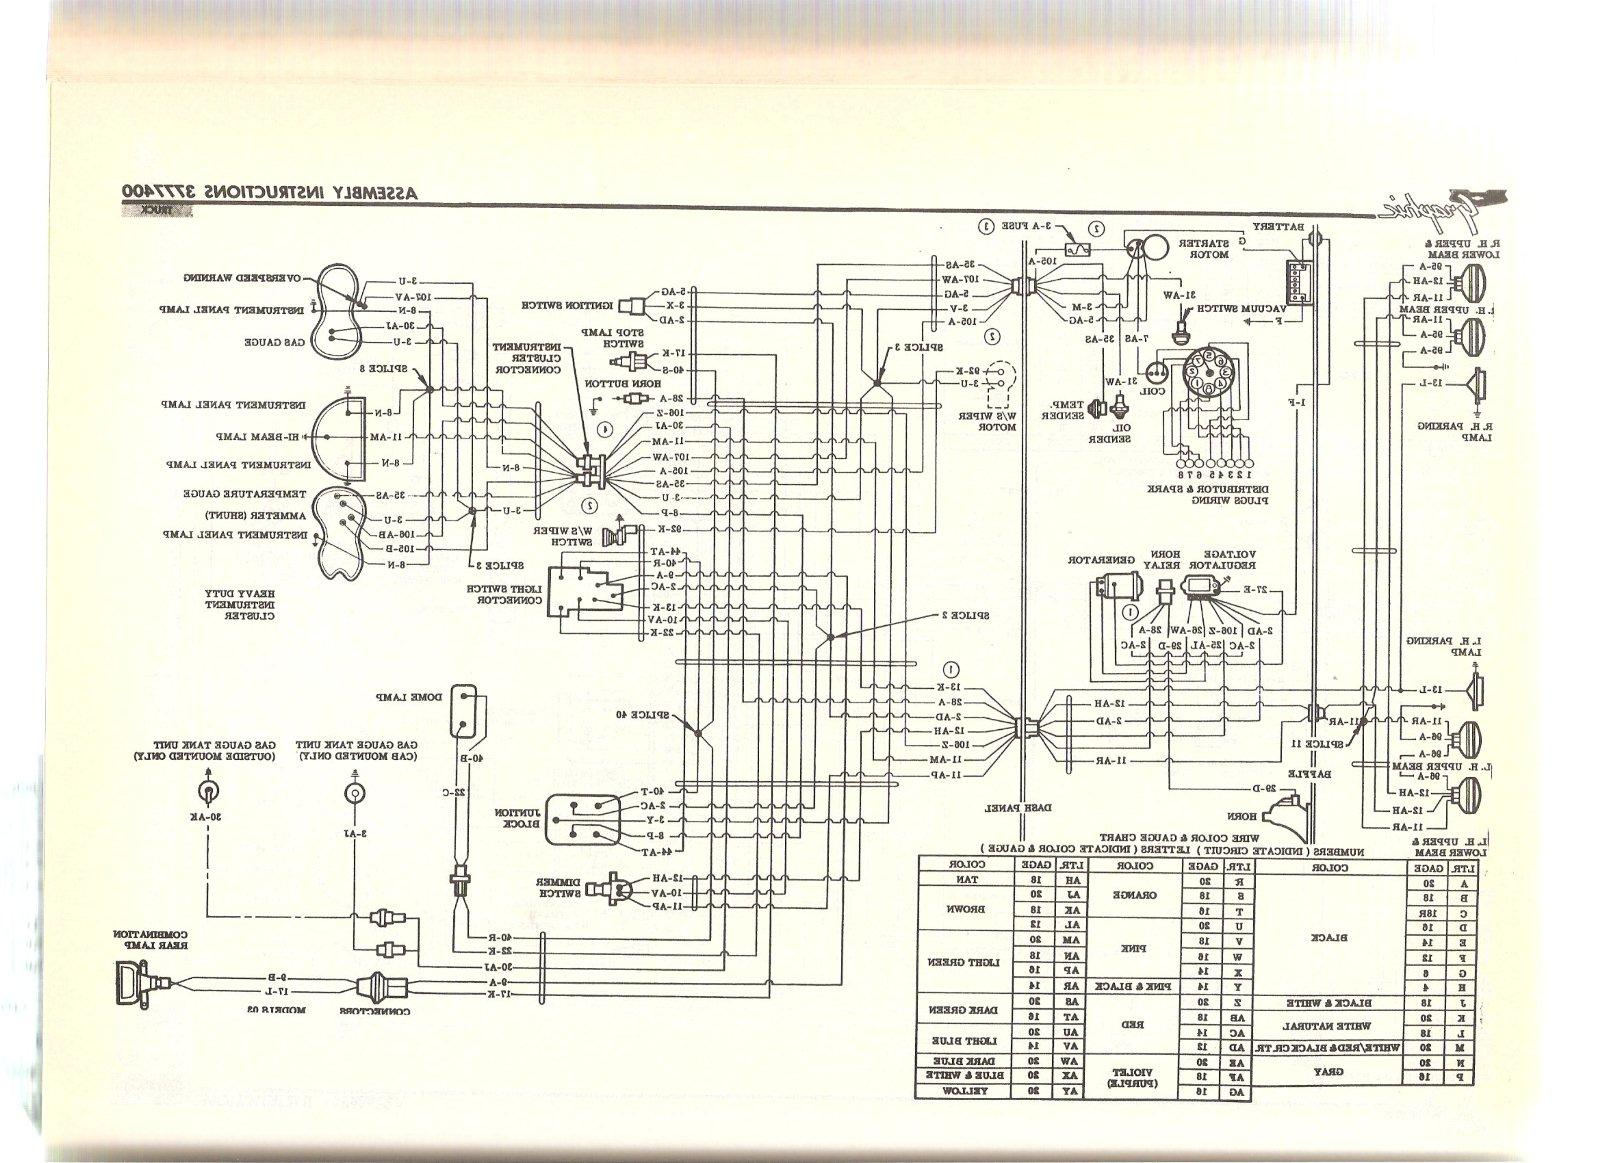 1950 Buick Wiring Diagram 1983 Harley Sportster Wiring Diagram Begeboy Wiring Diagram Source